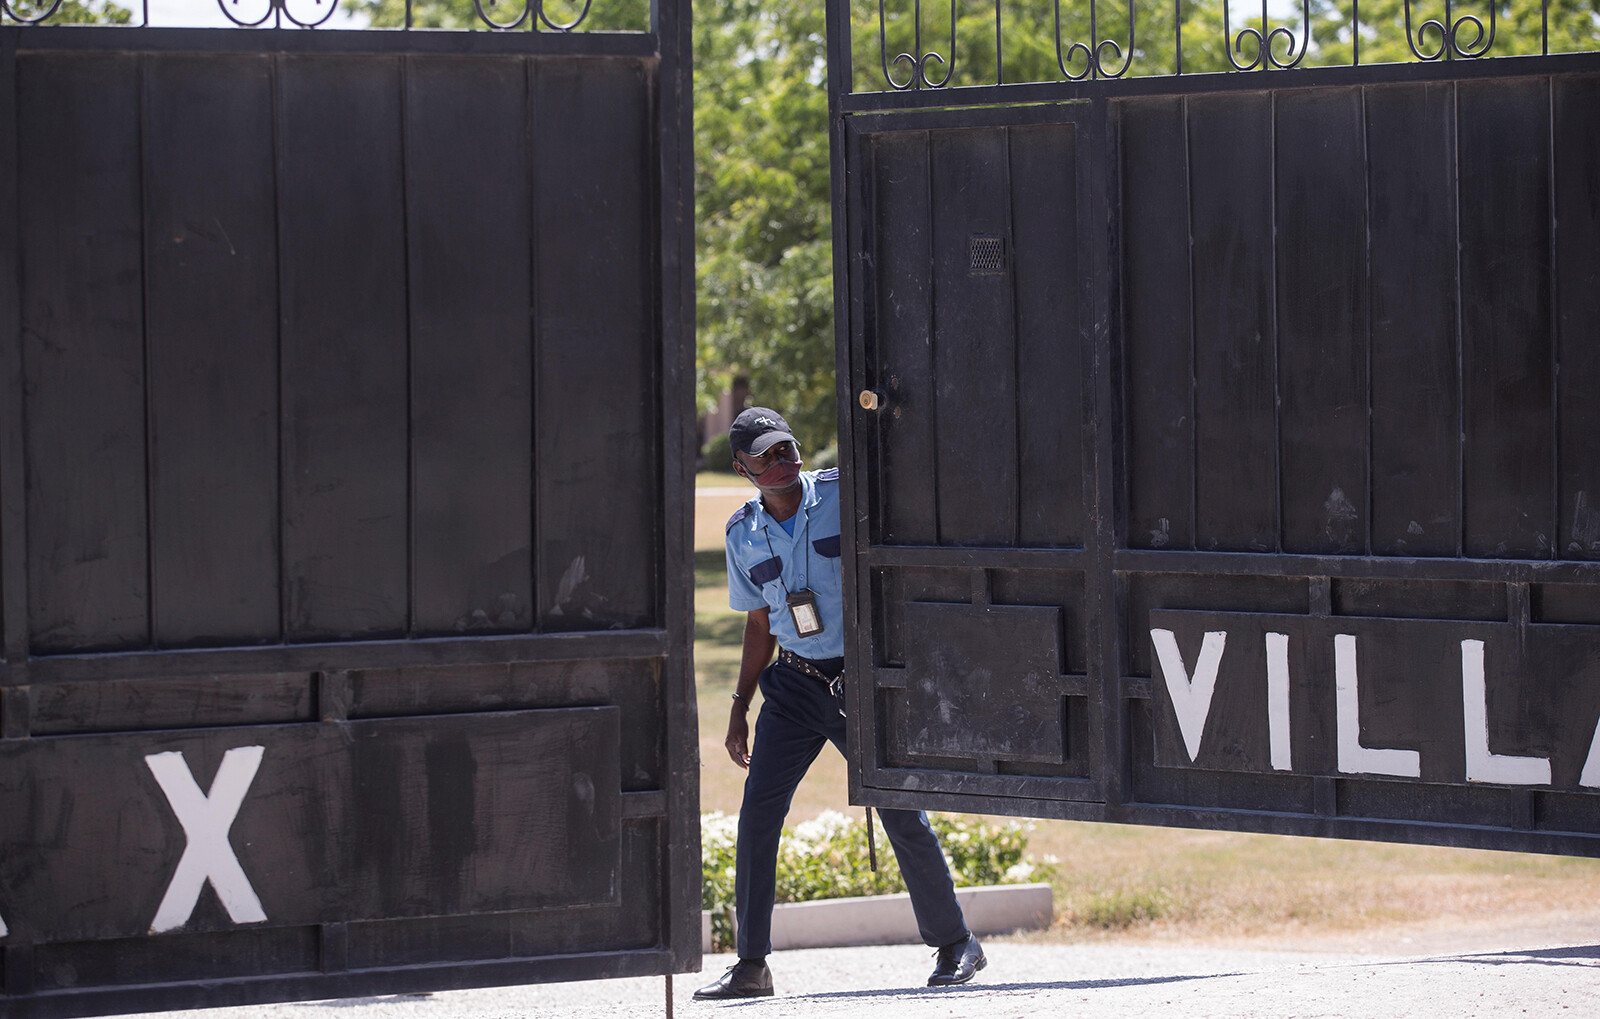 <i>Orlando Barria/EFE/Sipa</i><br/>Guards guard the morgue where the body of President Jovenel Moise was being held on July 10.